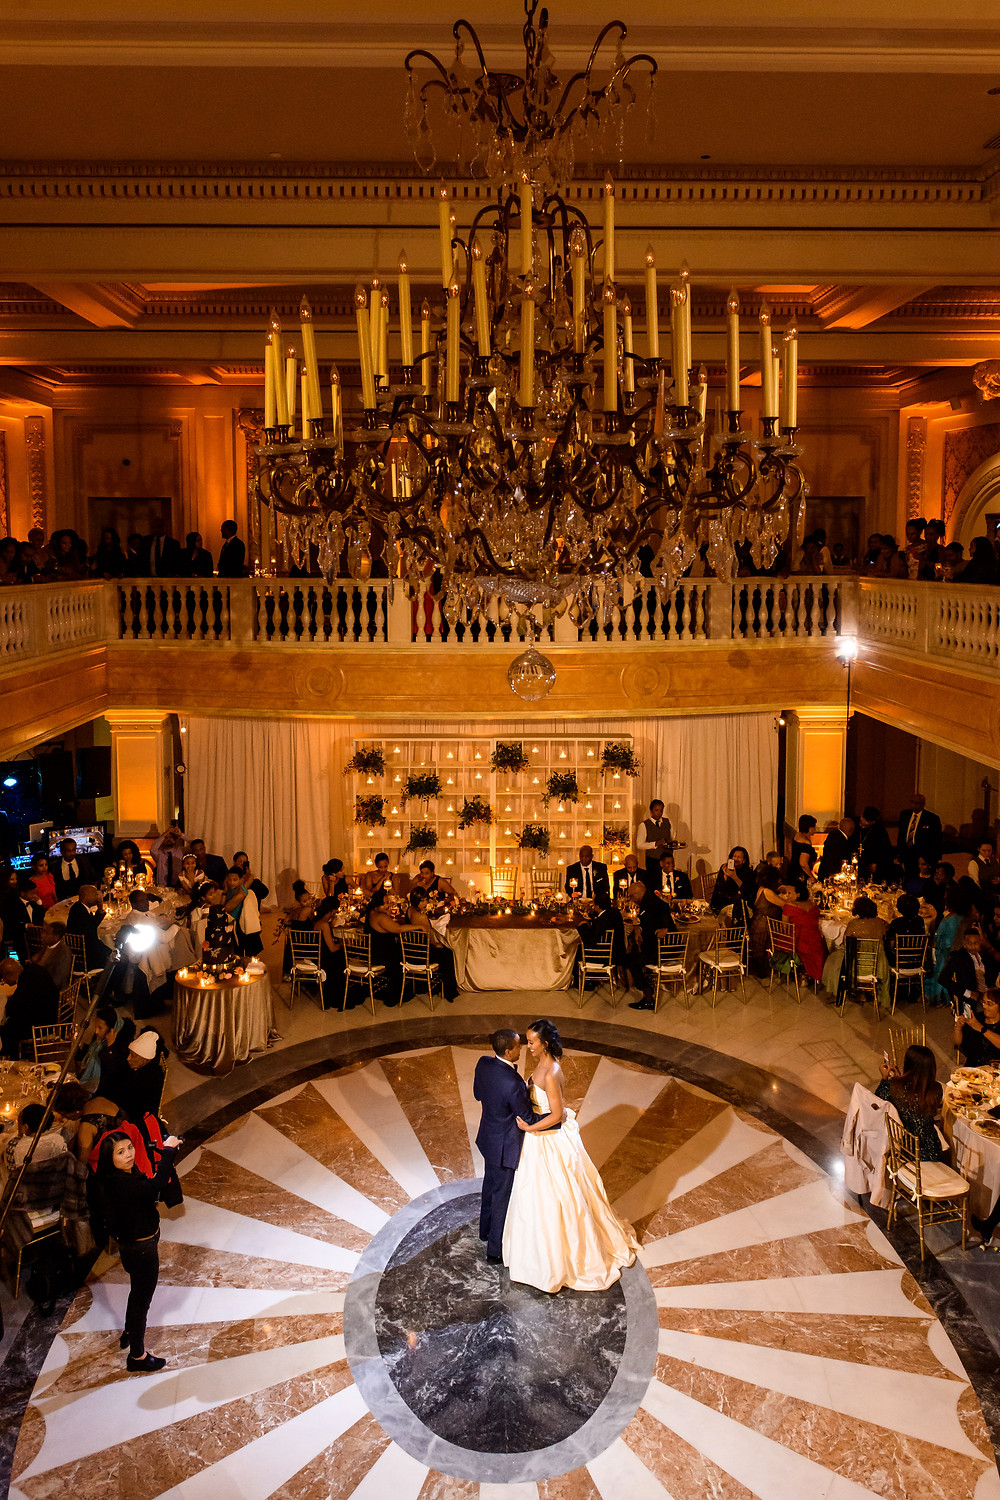 Couple dancing at The National Museum of Women in the Arts wedding venue